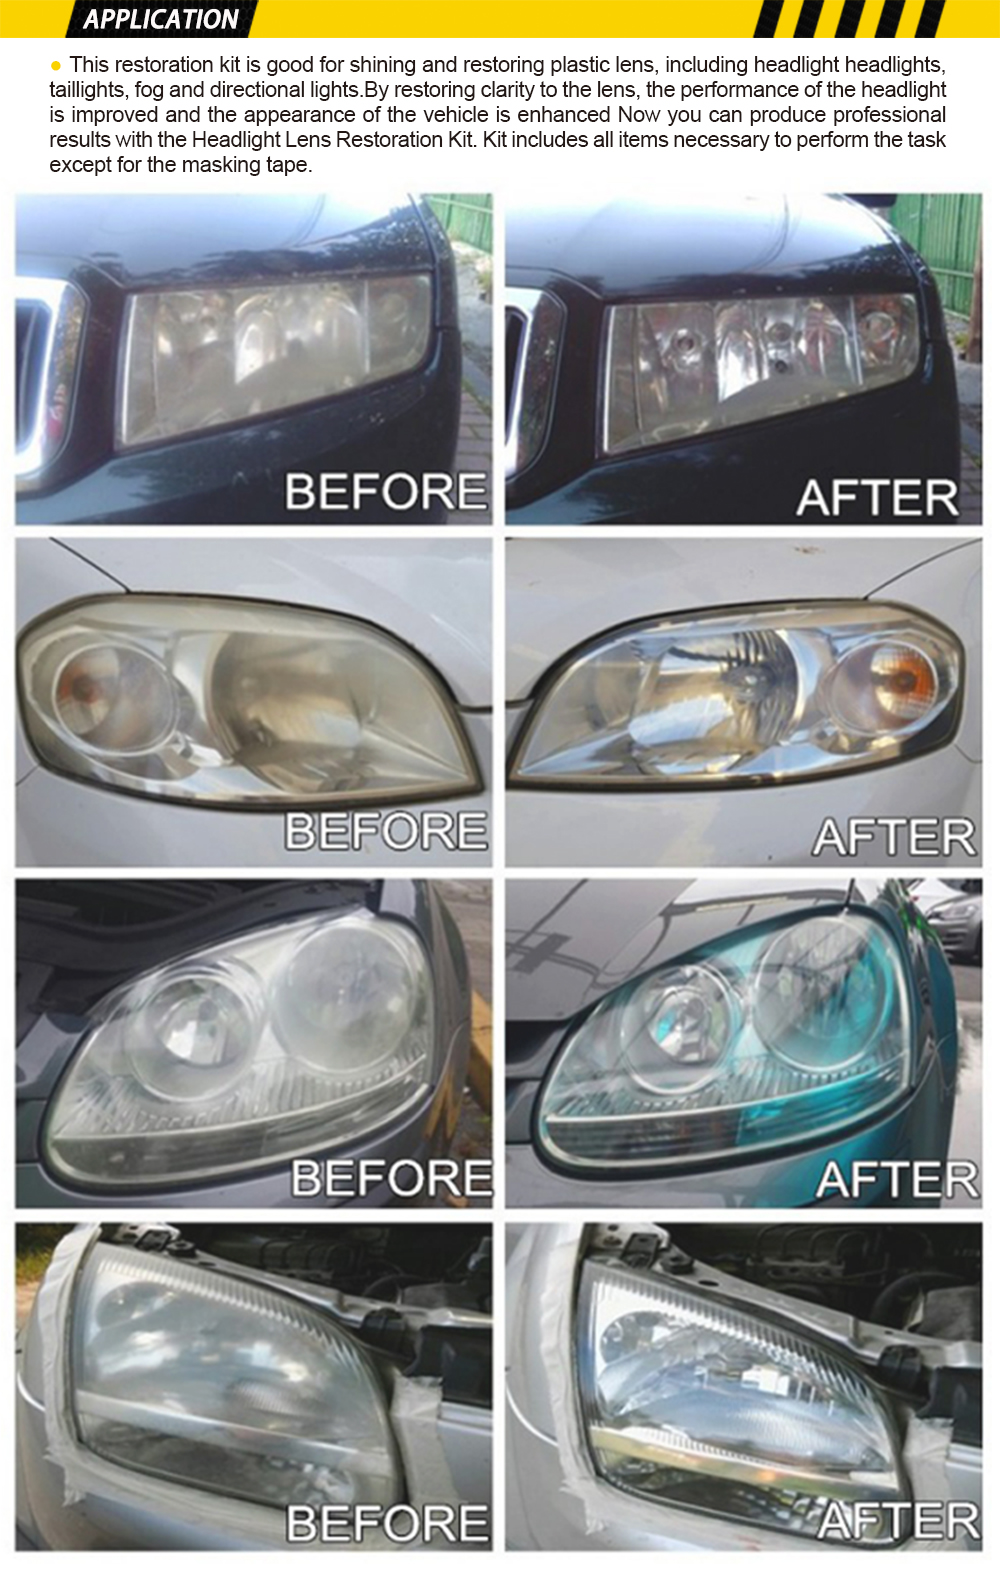 Locbondso Car Diy Headlight Scratch Manumotive Restoration Kit